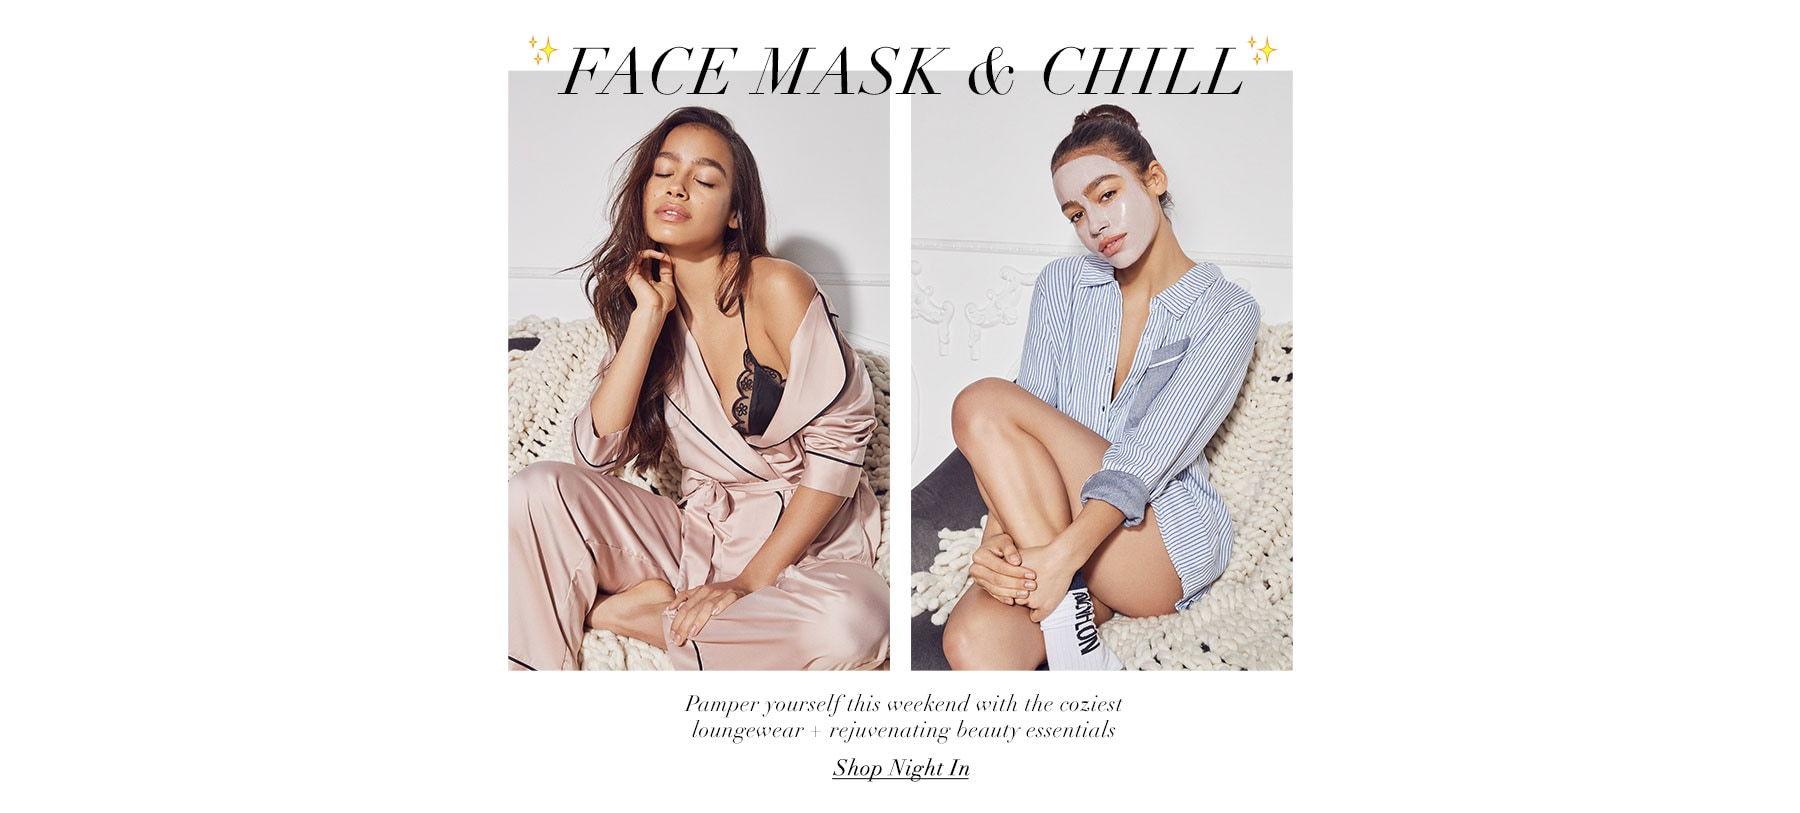 Face mask & chill. Pamper yourself this weekend with the coziest loungewear + rejuvenating beauty essentials. Shop the edit.